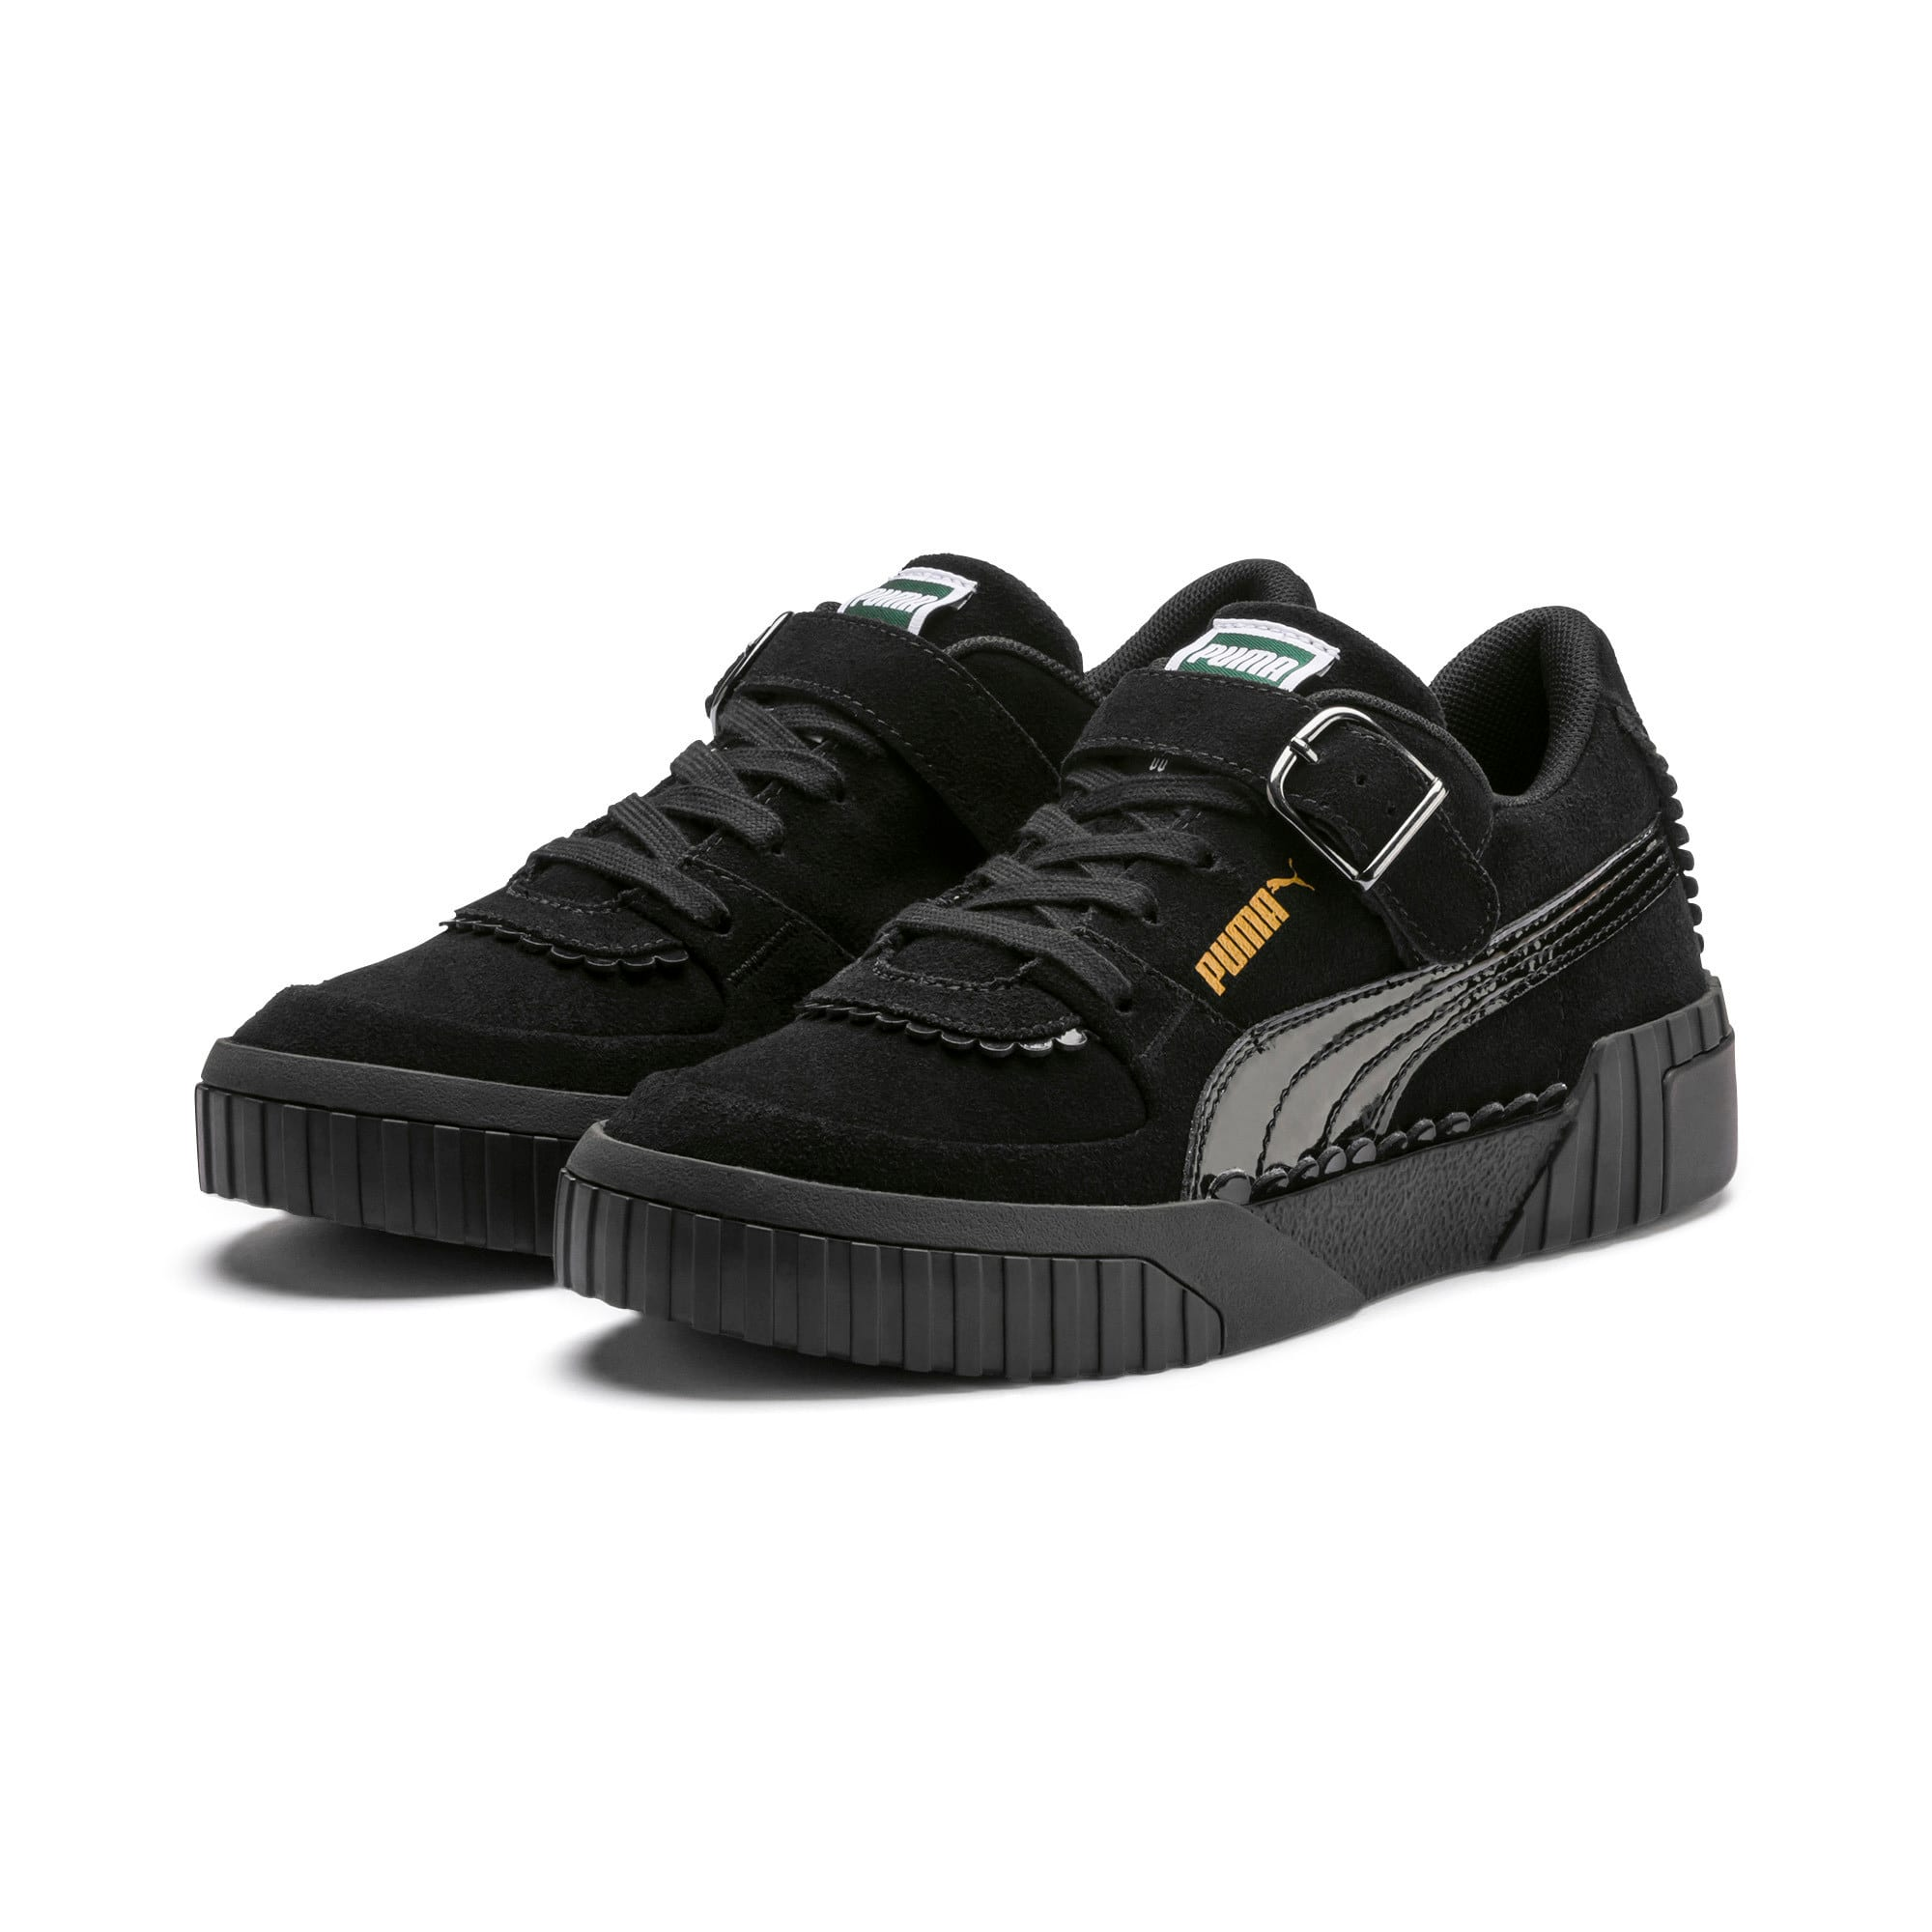 Thumbnail 8 of PUMA x TYAKASHA Cali Women's Sneakers, Puma Black, medium